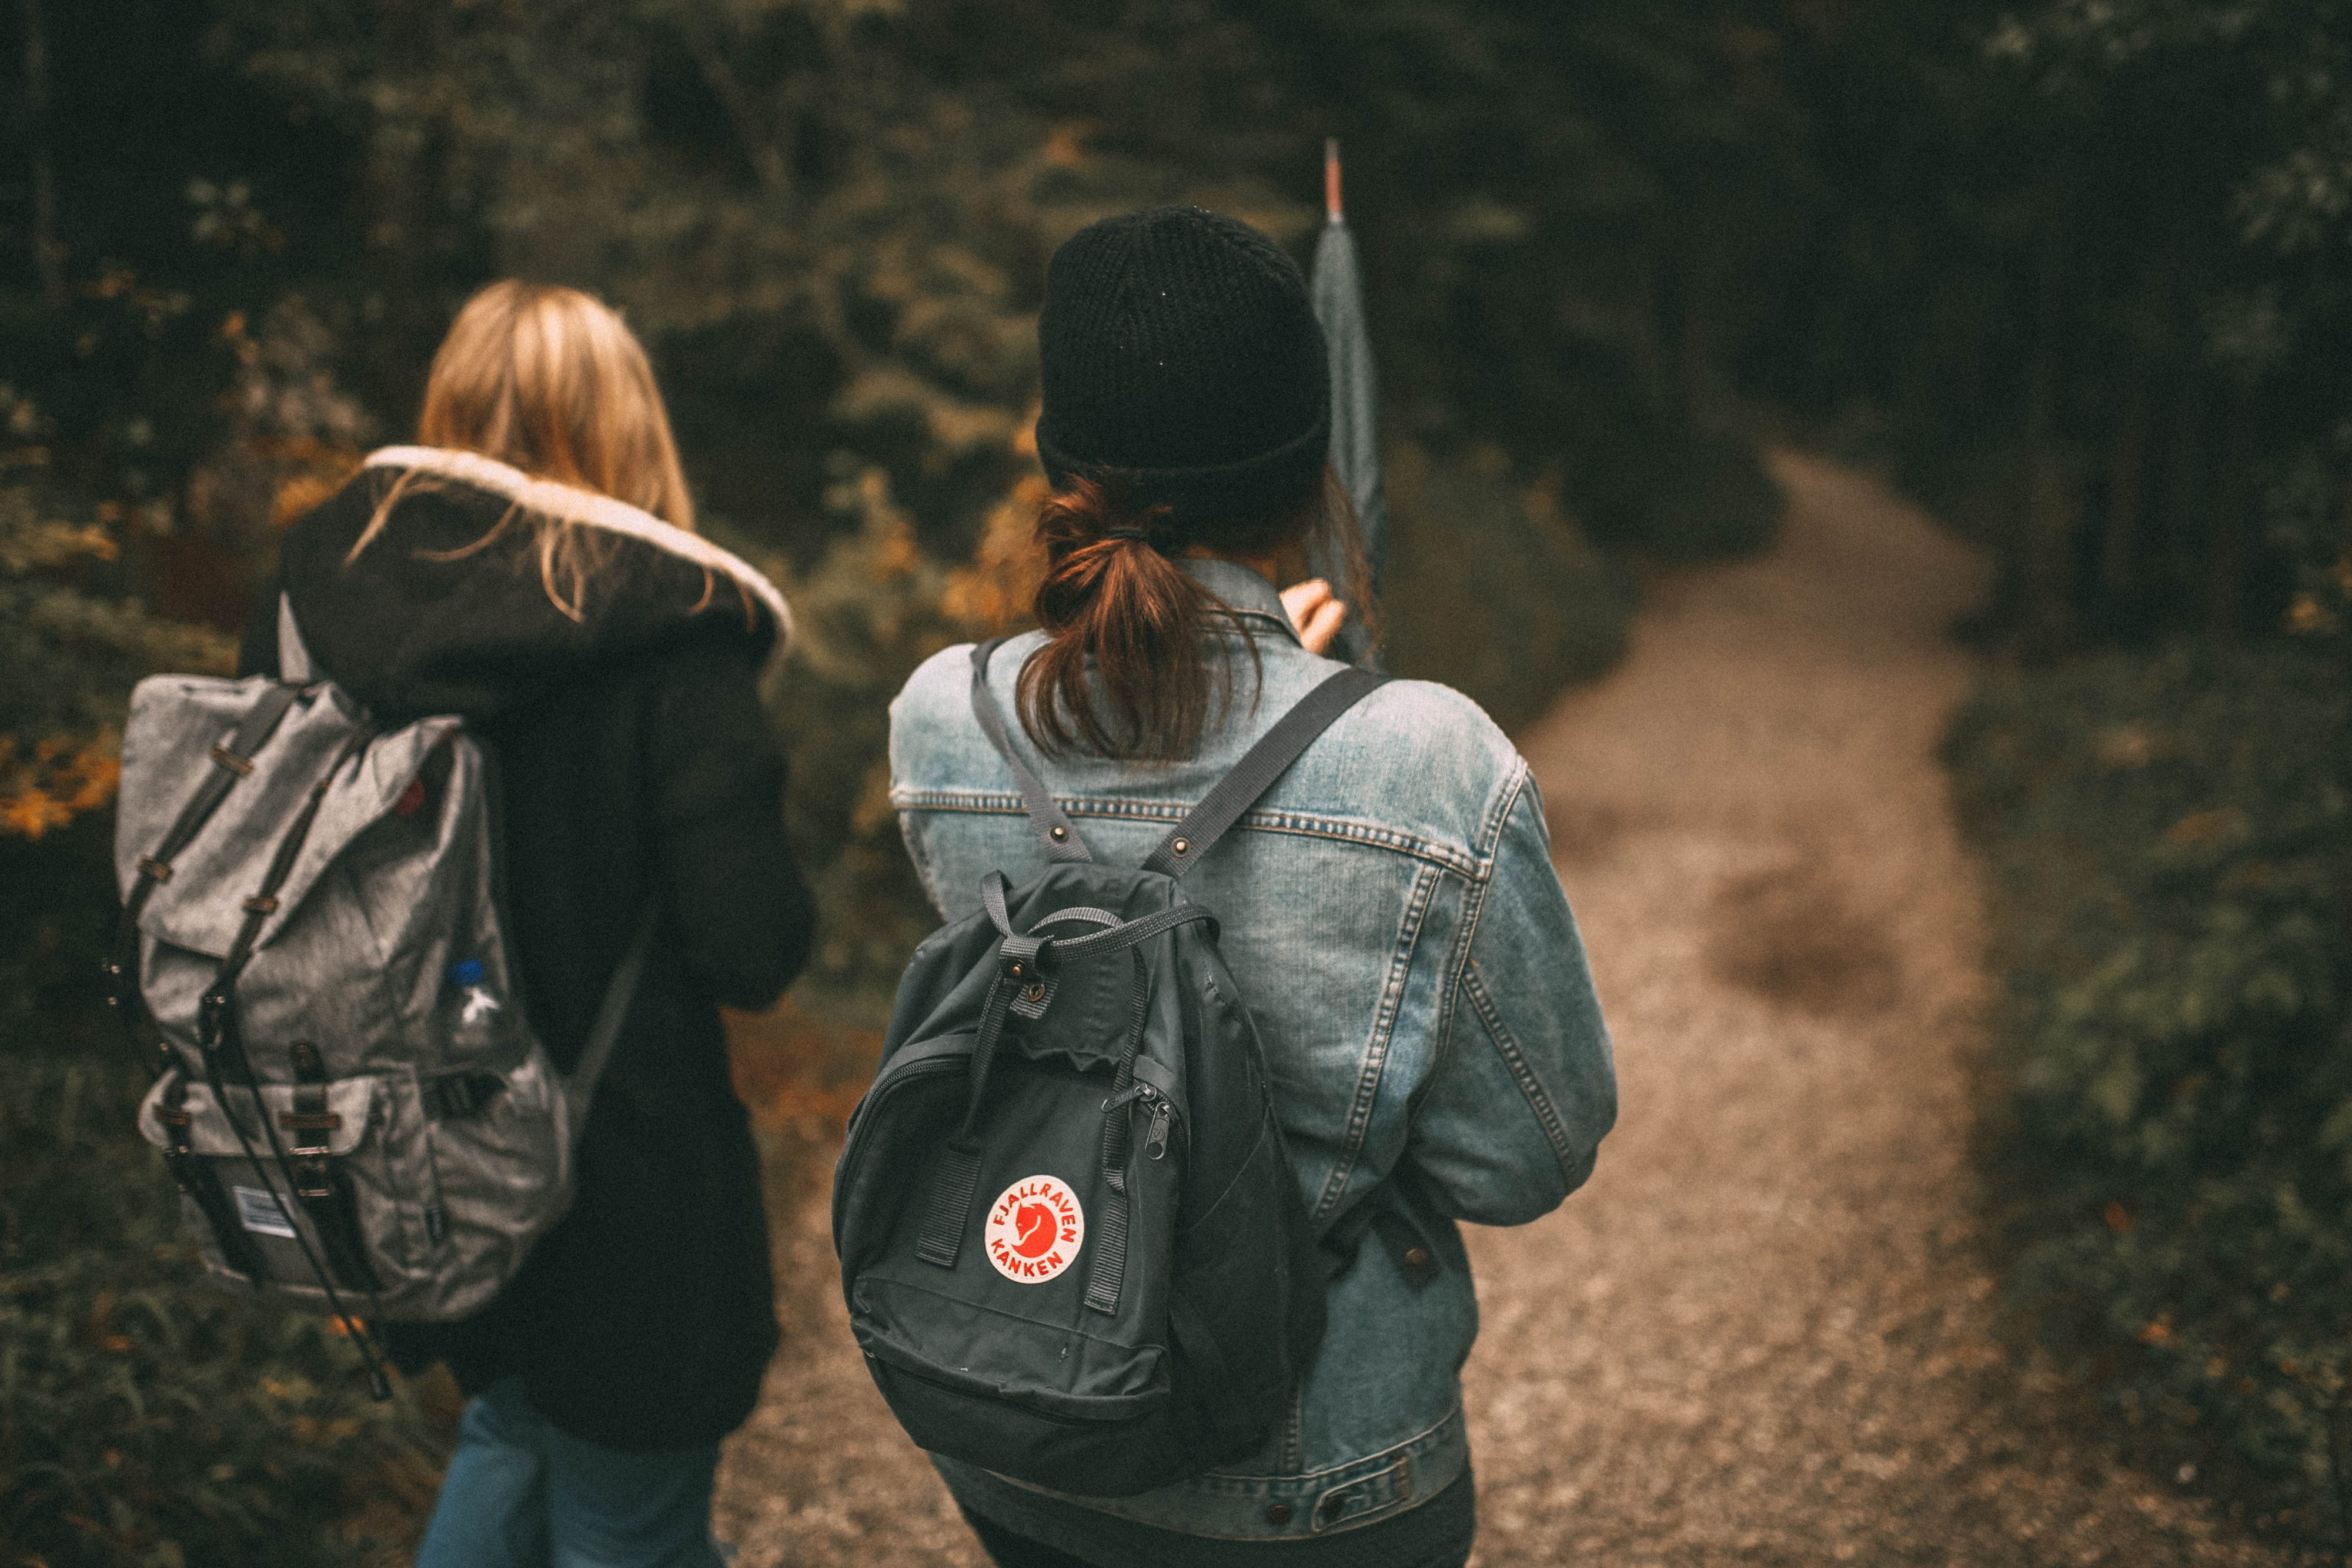 backpack-environment-forest-590798